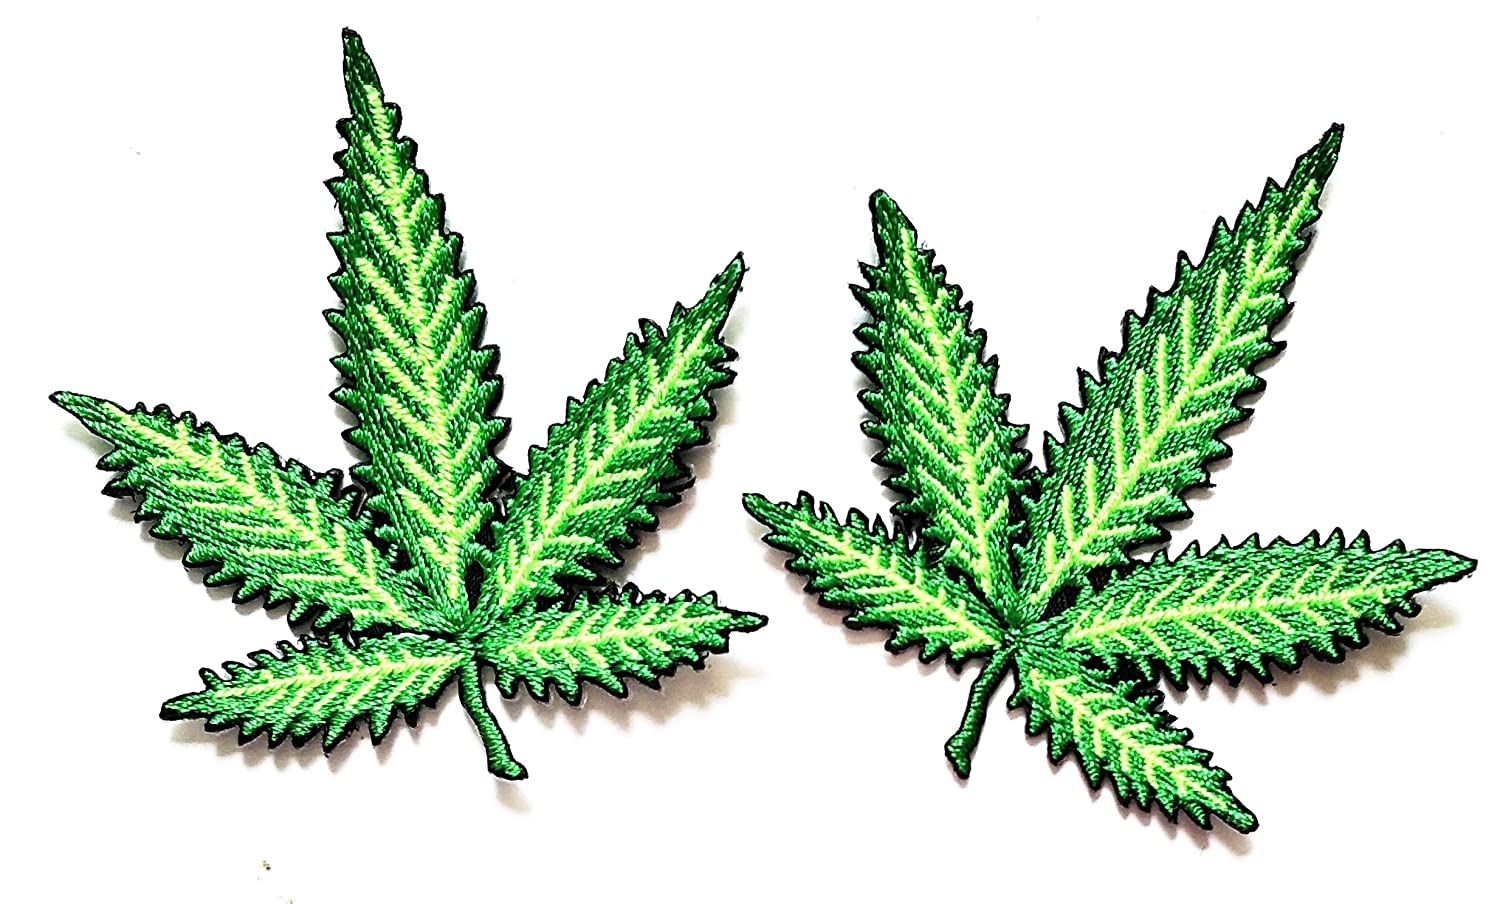 Nipitshop Patches Set Green Marijuana Leaf Pot Weed Grass Ganja Art Patch Embroidered Iron On Patch for Clothes Backpacks T-Shirt Jeans Skirt Vests Scarf Hat Bag